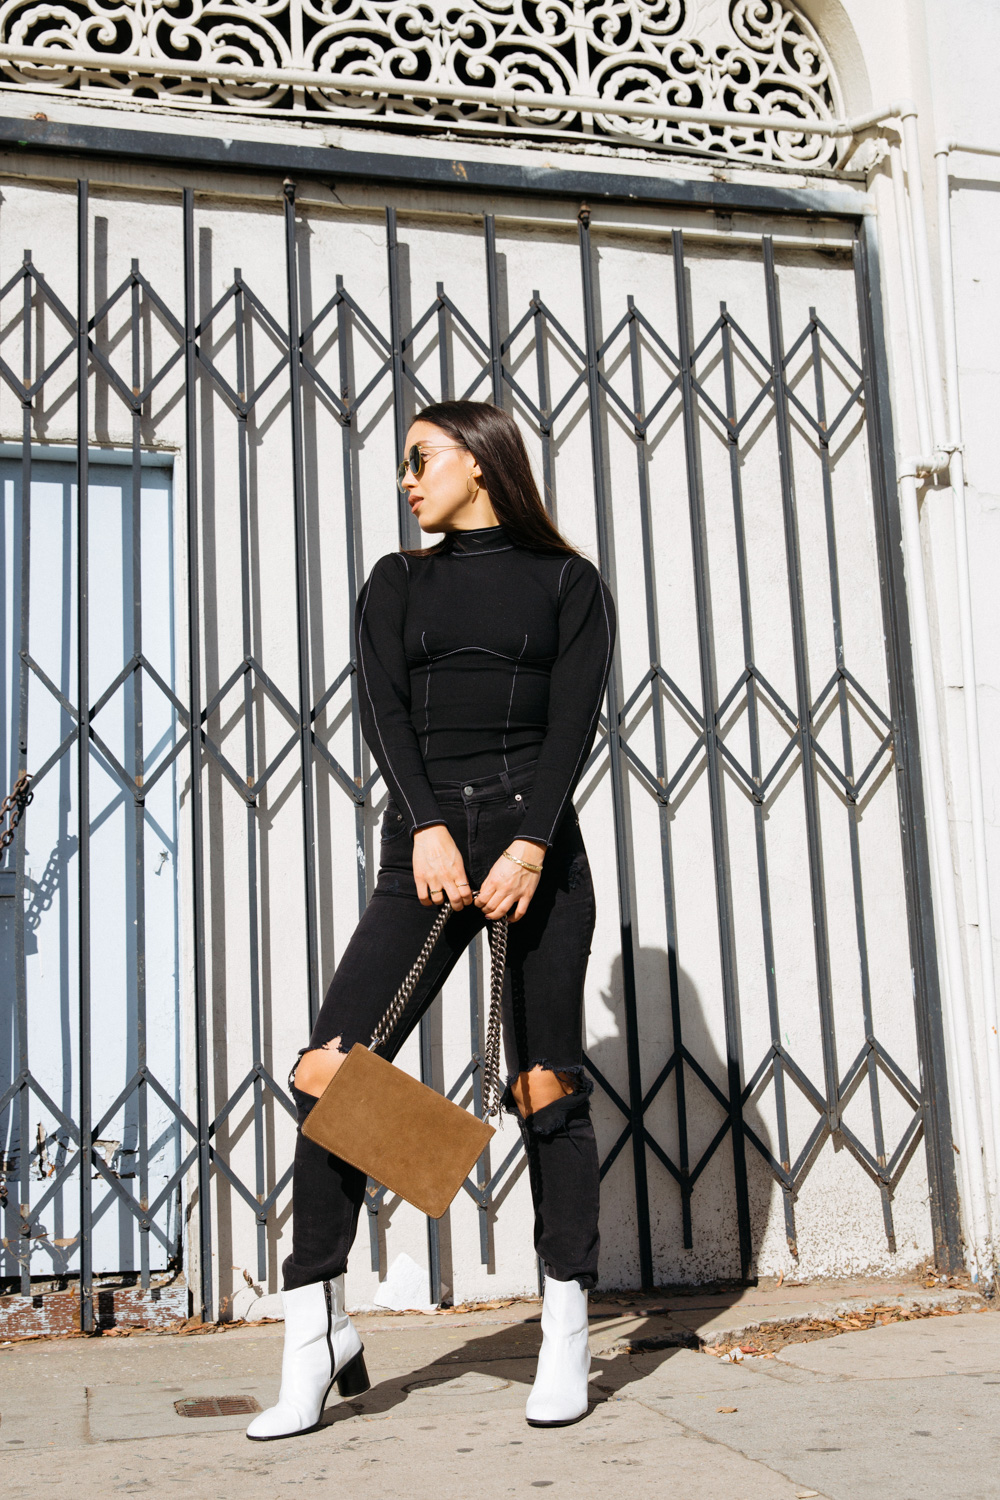 LOVE OR MONEY by Emily Tong wearing topstitch trend top reformation jeans white boots naked vice chain bag